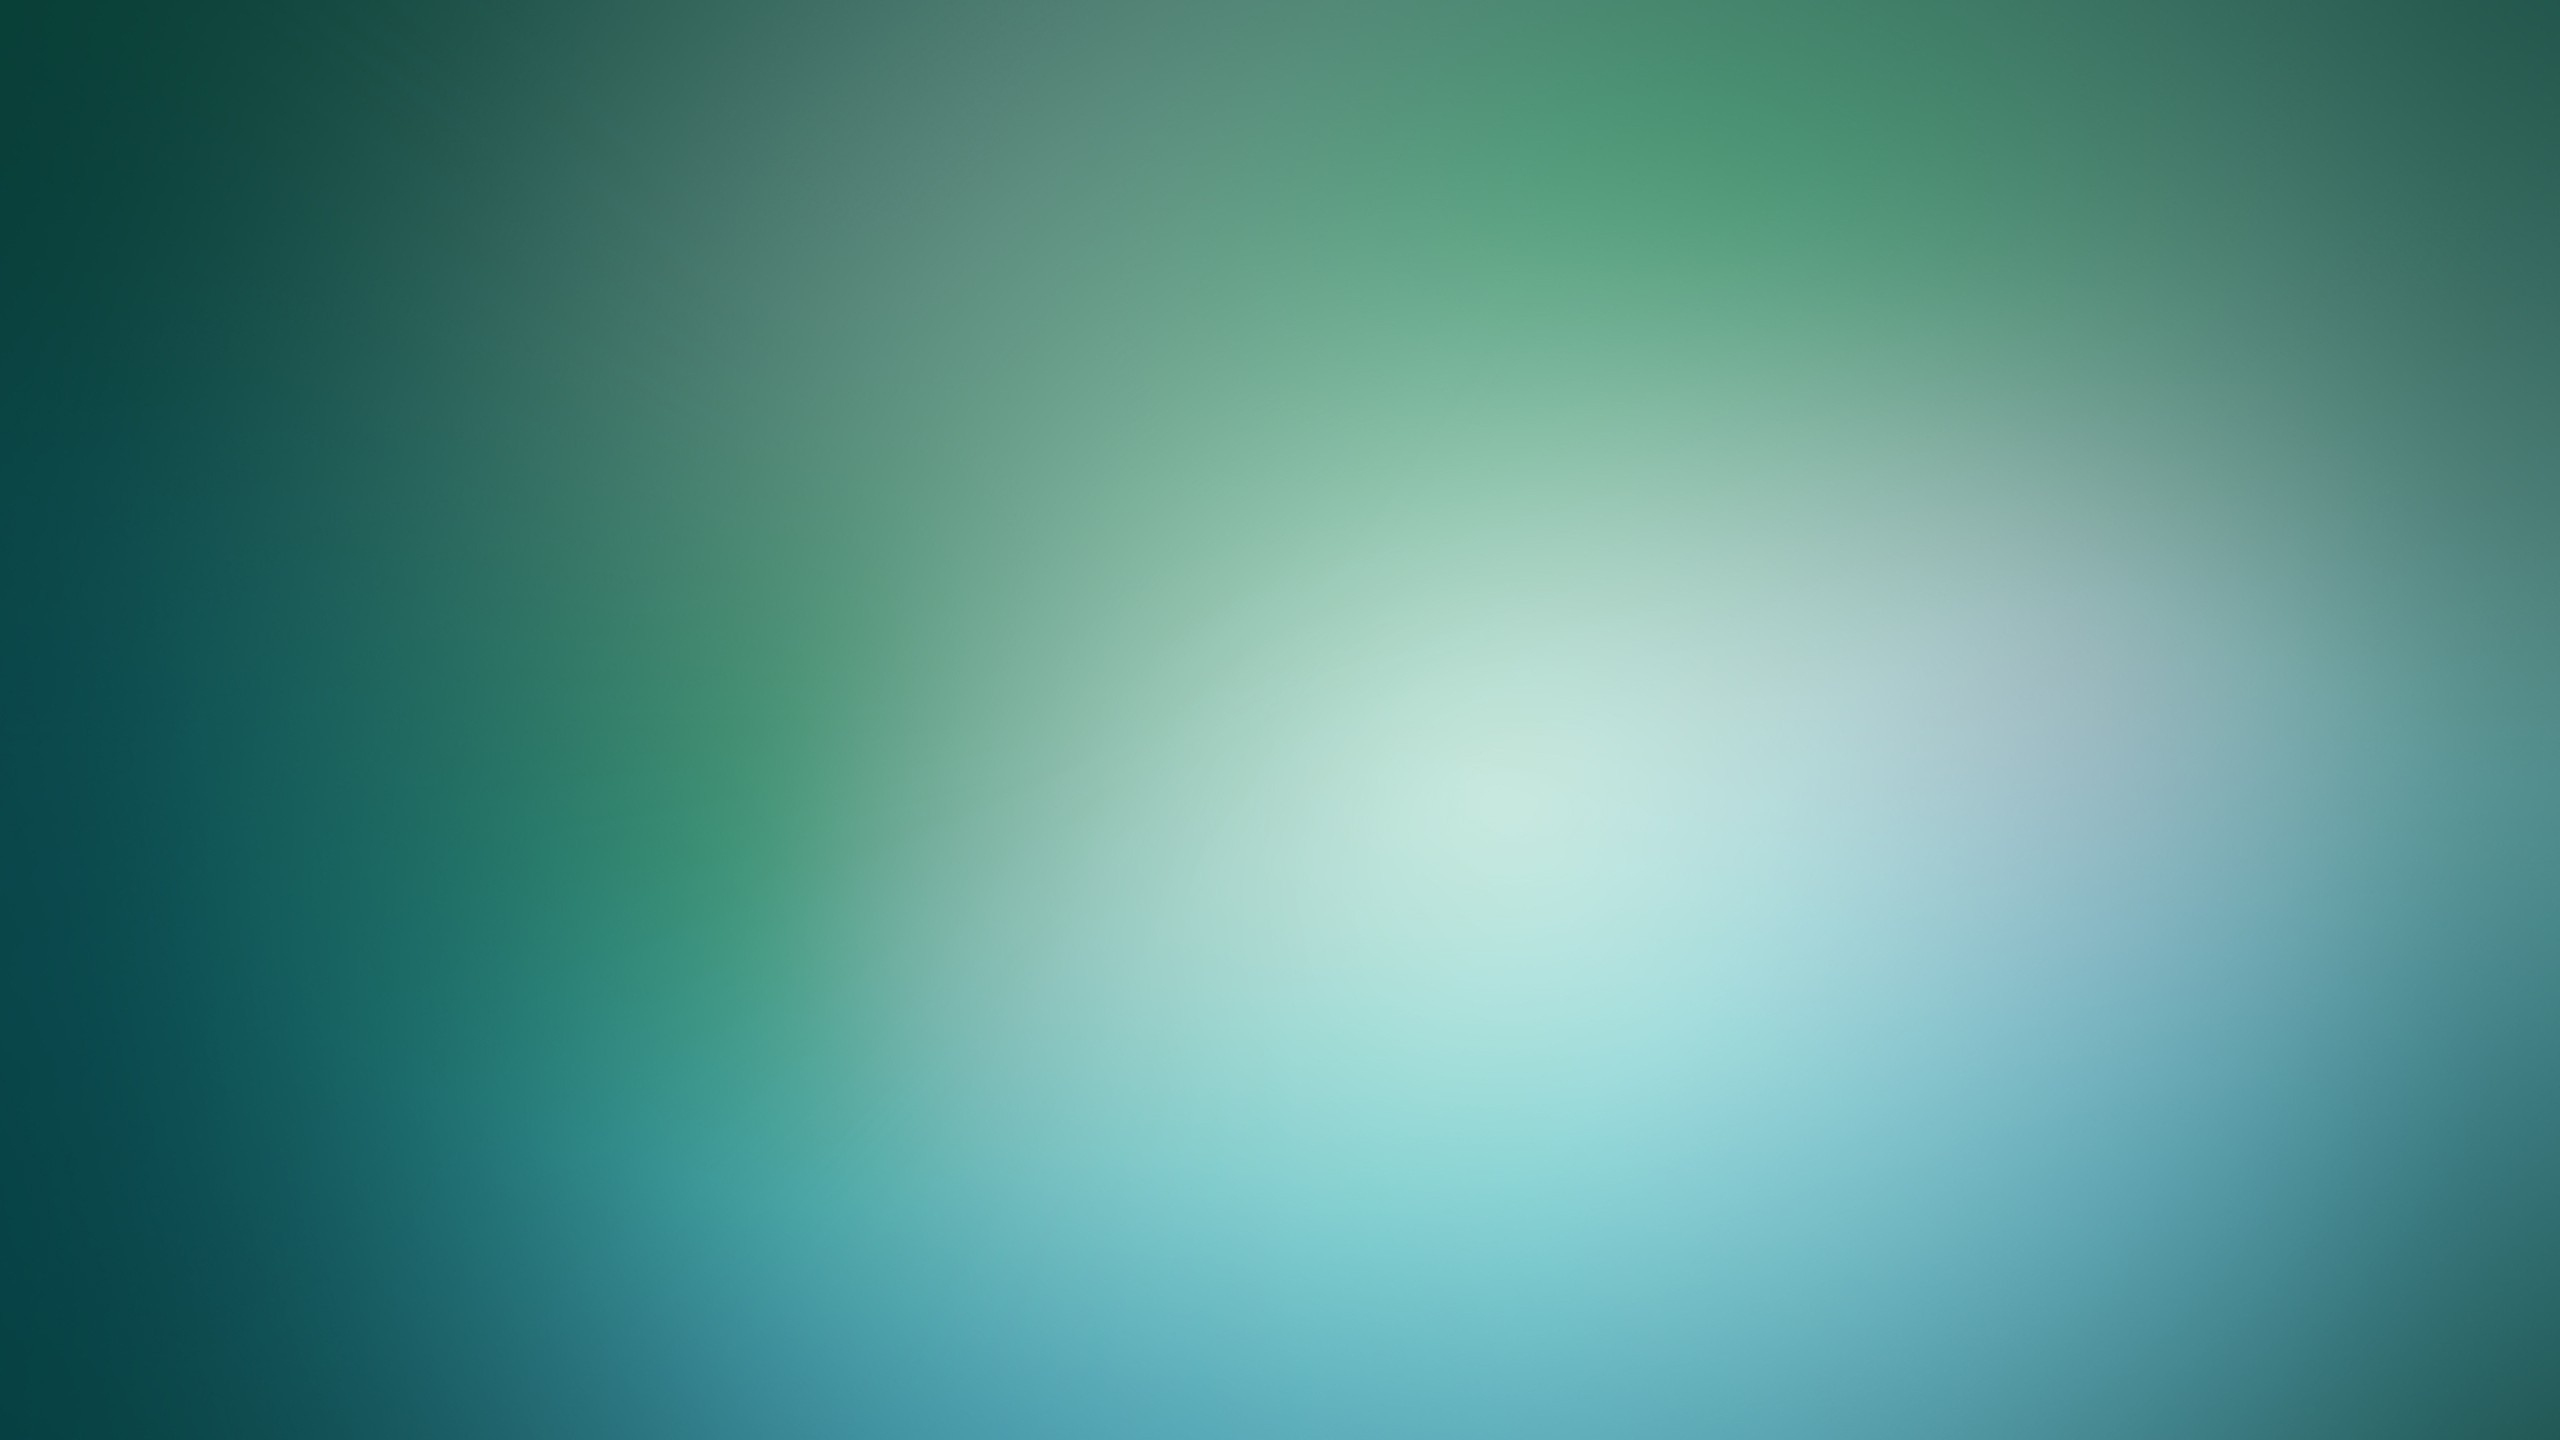 HD Wallpapers Solid Colors